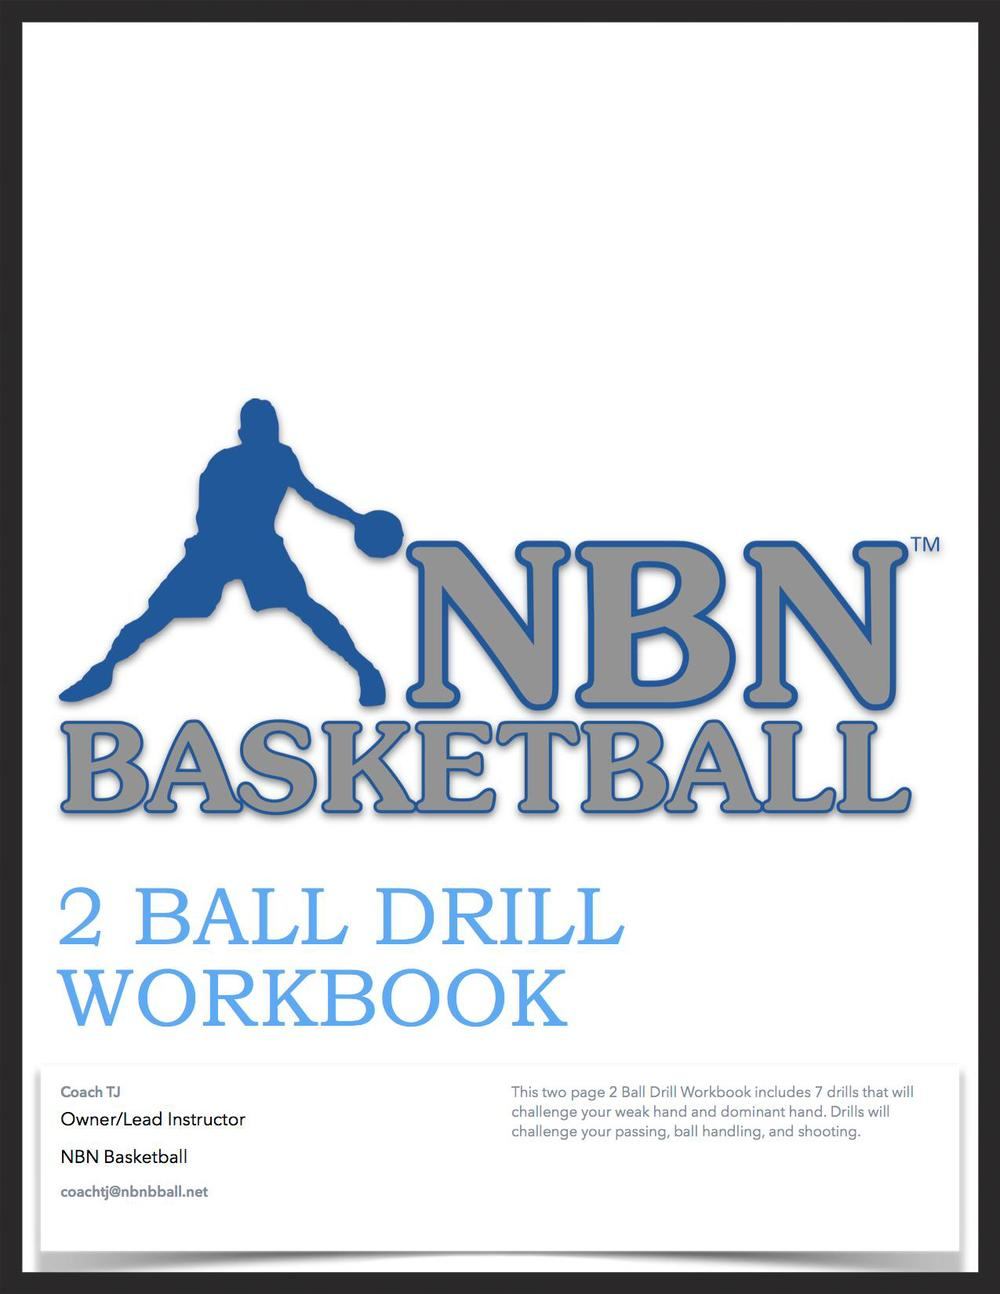 2 Ball Drill Workbook Cover.jpg